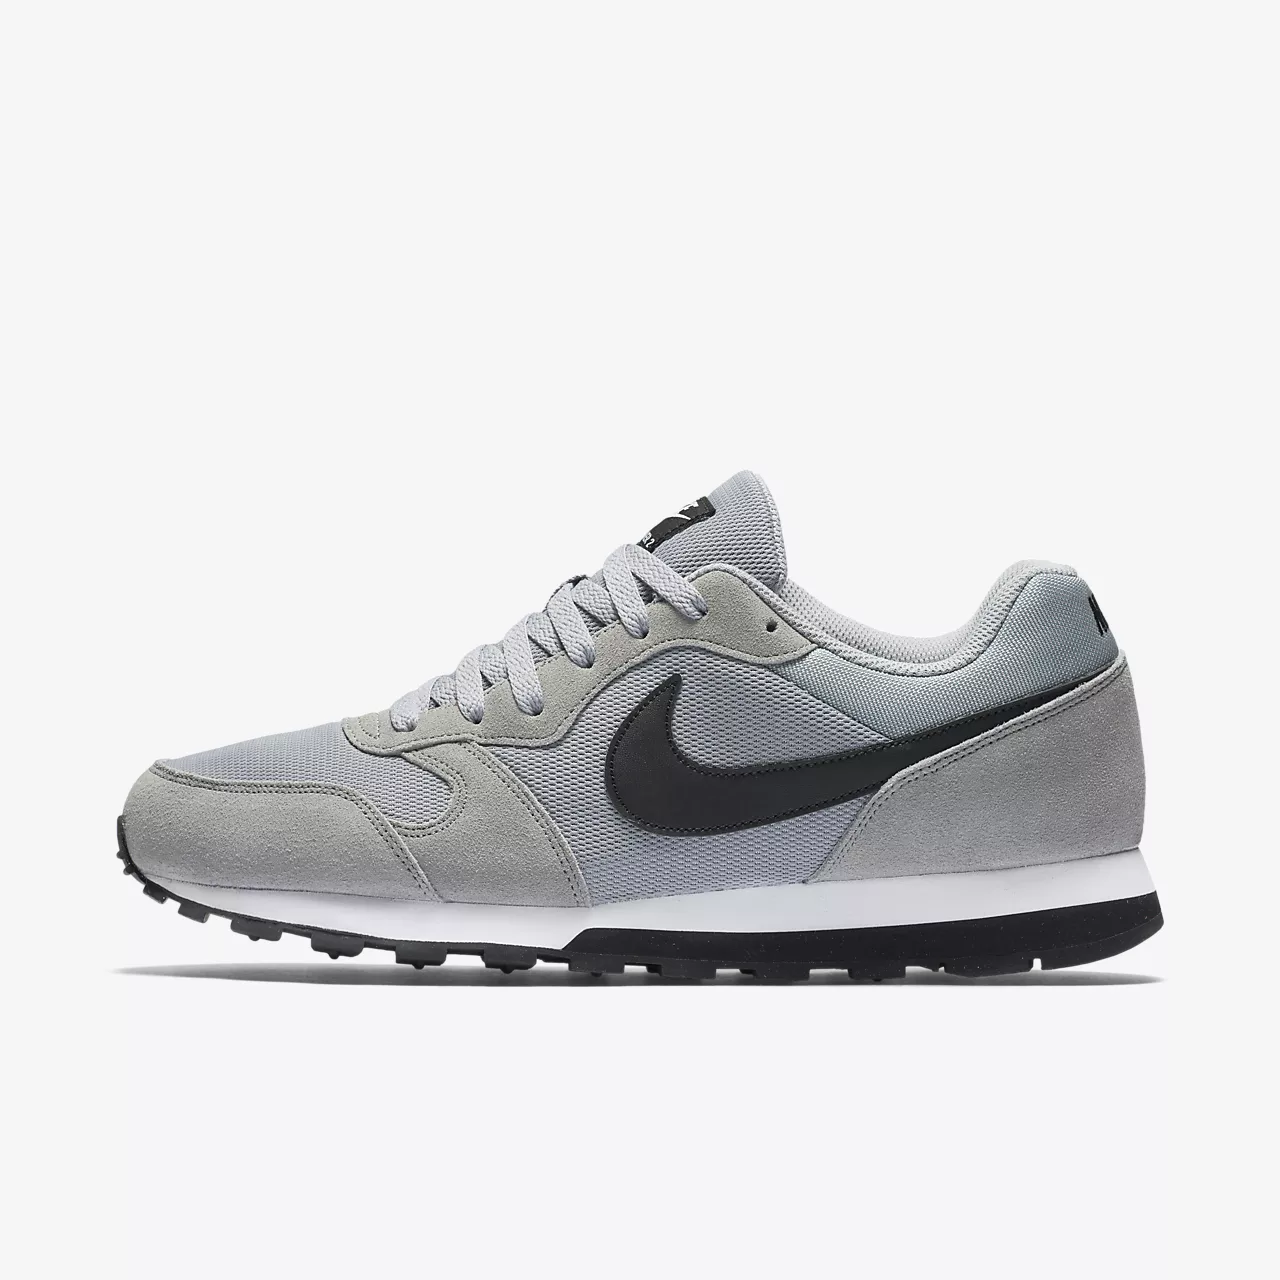 유럽직배송 나이키 NIKE Nike MD Runner 2 Men's Shoe 749794-001